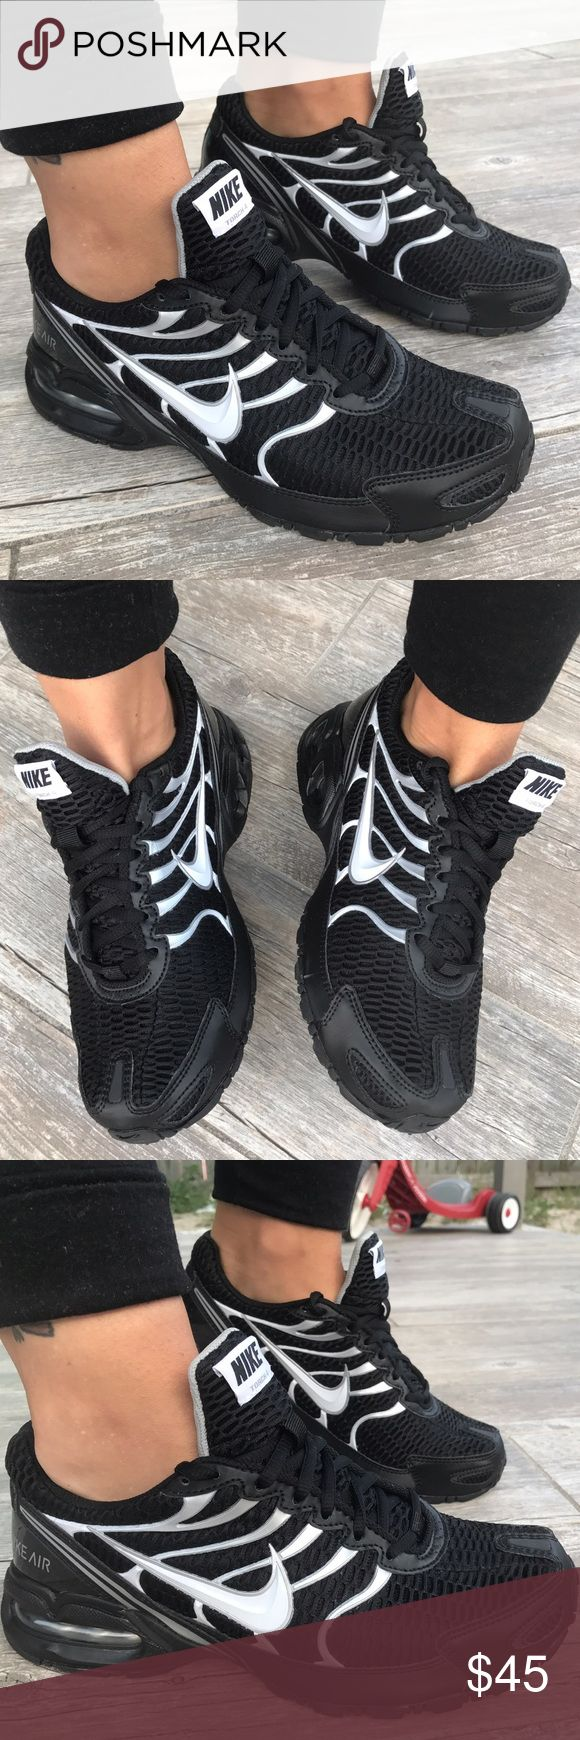 Nike air max torch 4 running shoe - Air Max Torch 4 Very Comfy For Everything Nwt New Nike Shoesair